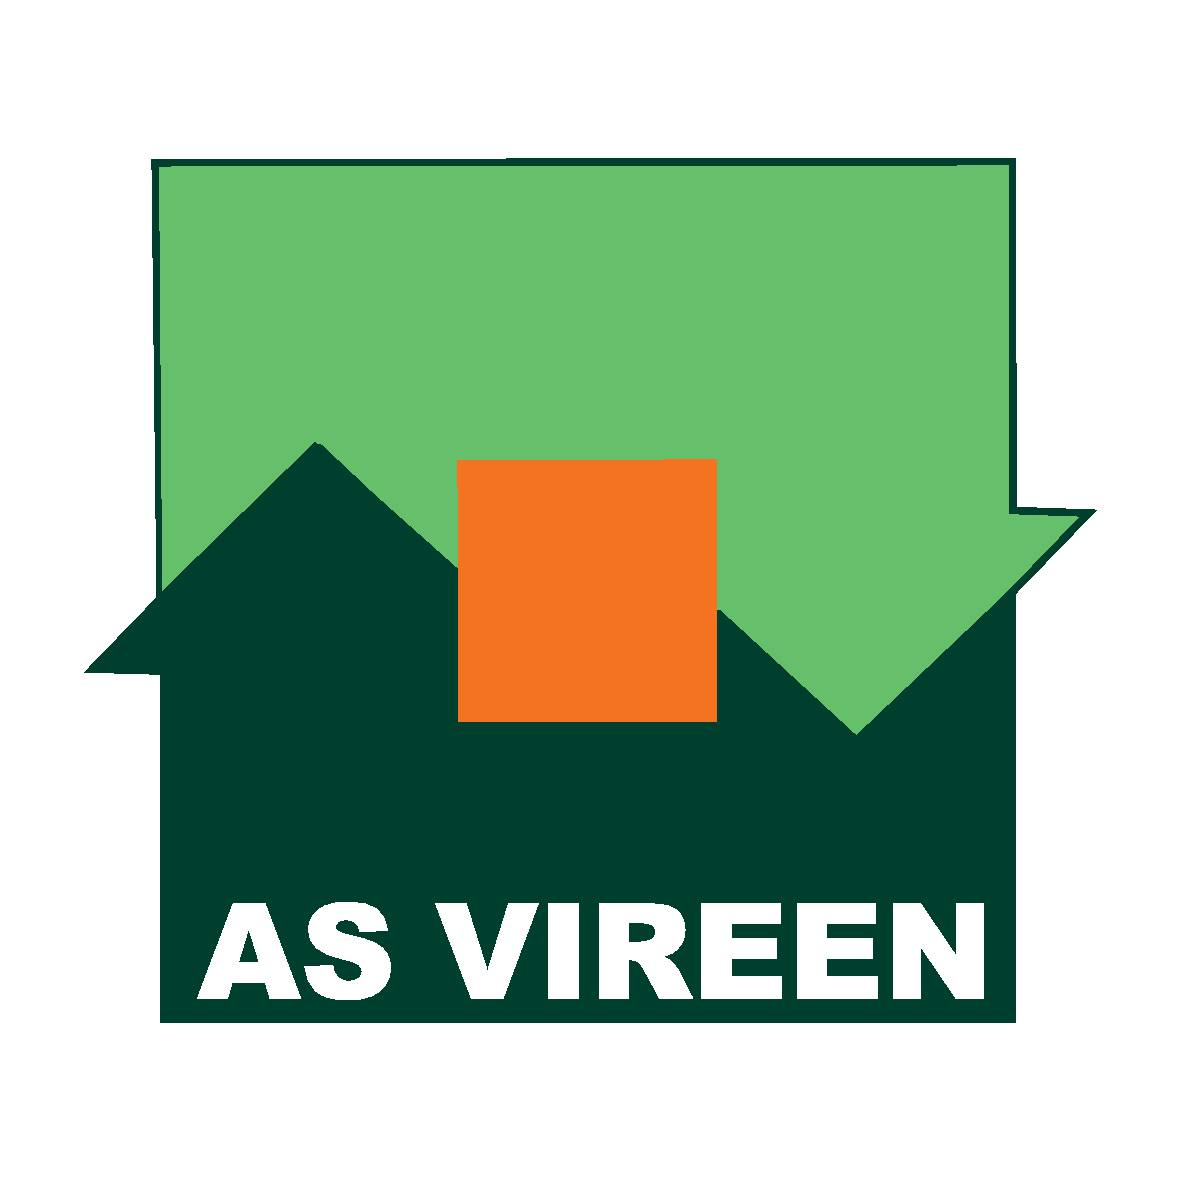 AS VIREEN